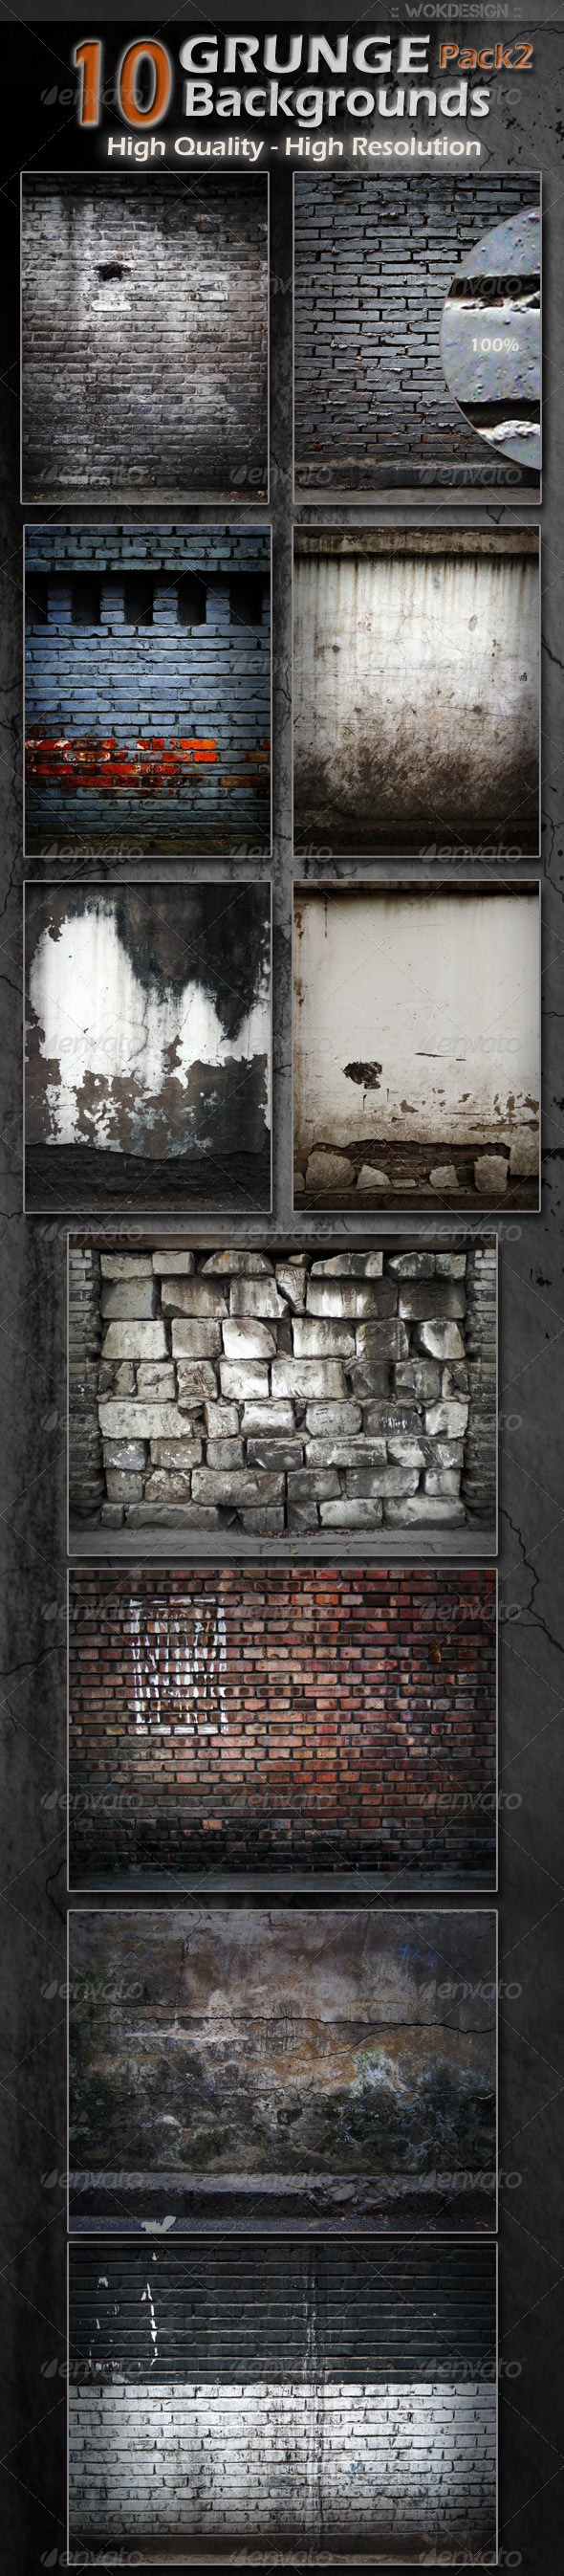 10 Grunge Backgrounds Pack 2 - Backgrounds Graphics